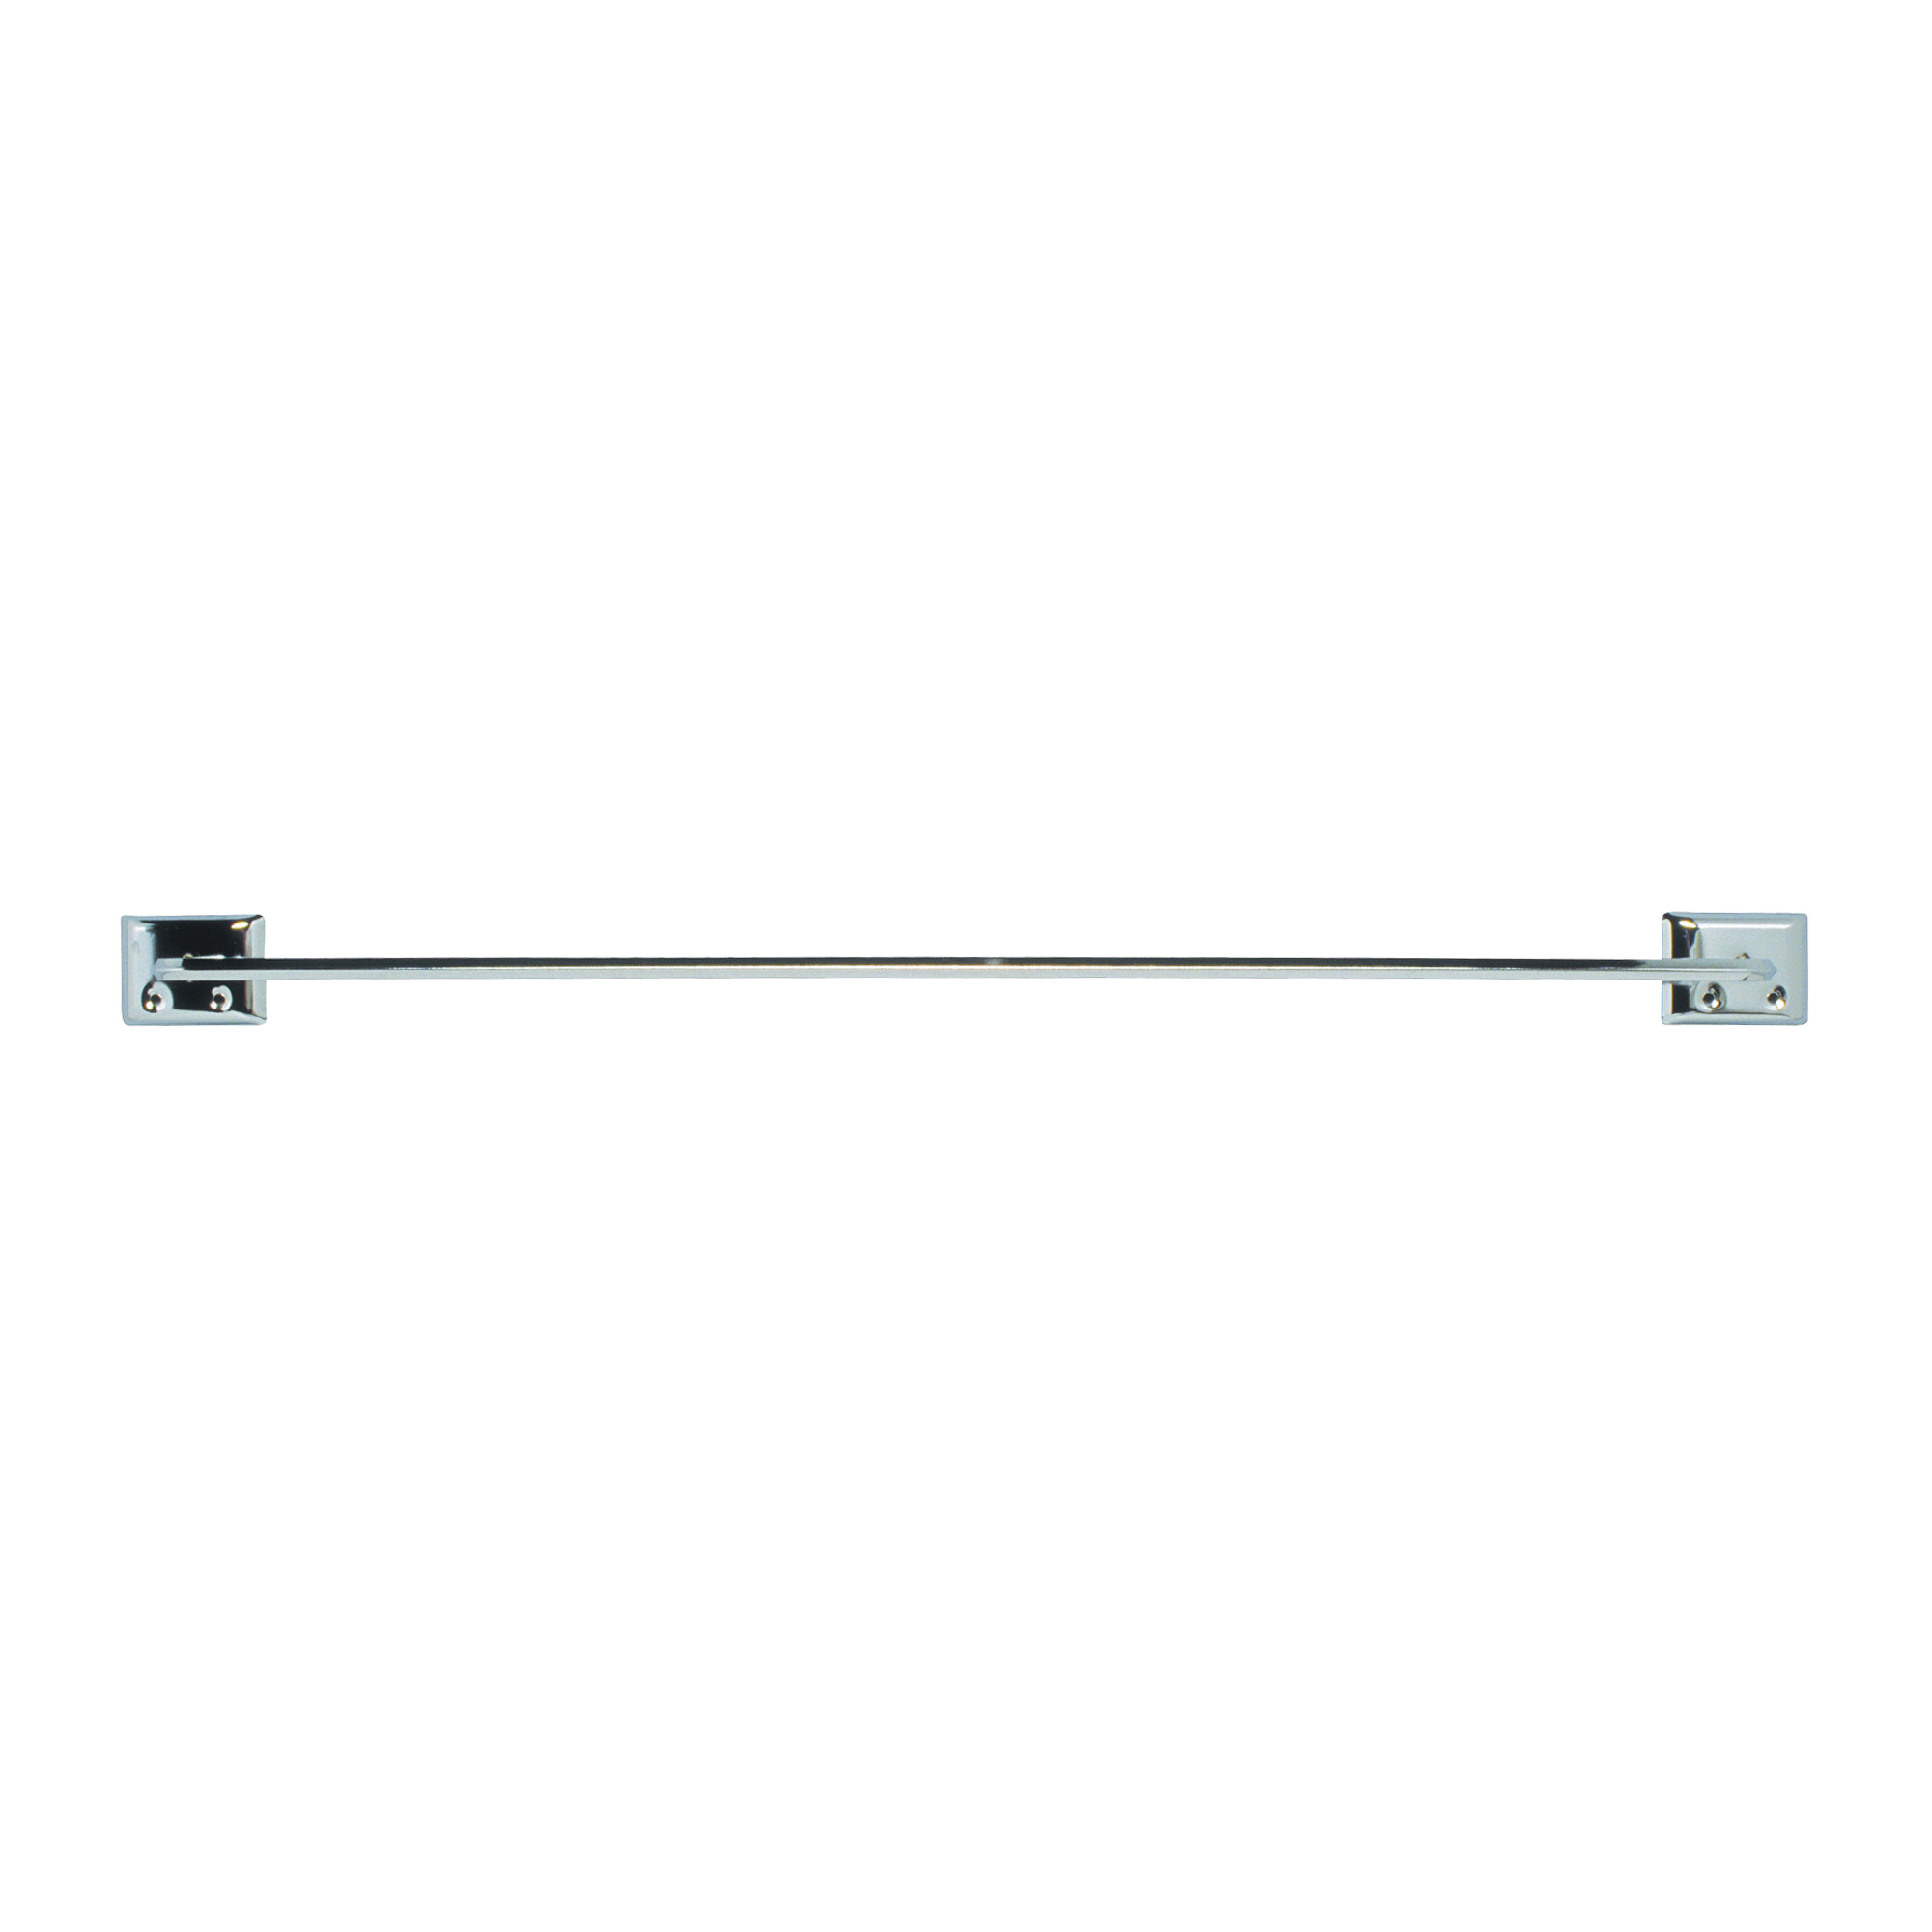 Picture of DECKO 38170 Towel Bar, 24 in L Rod, Steel, Chrome, Surface Mounting